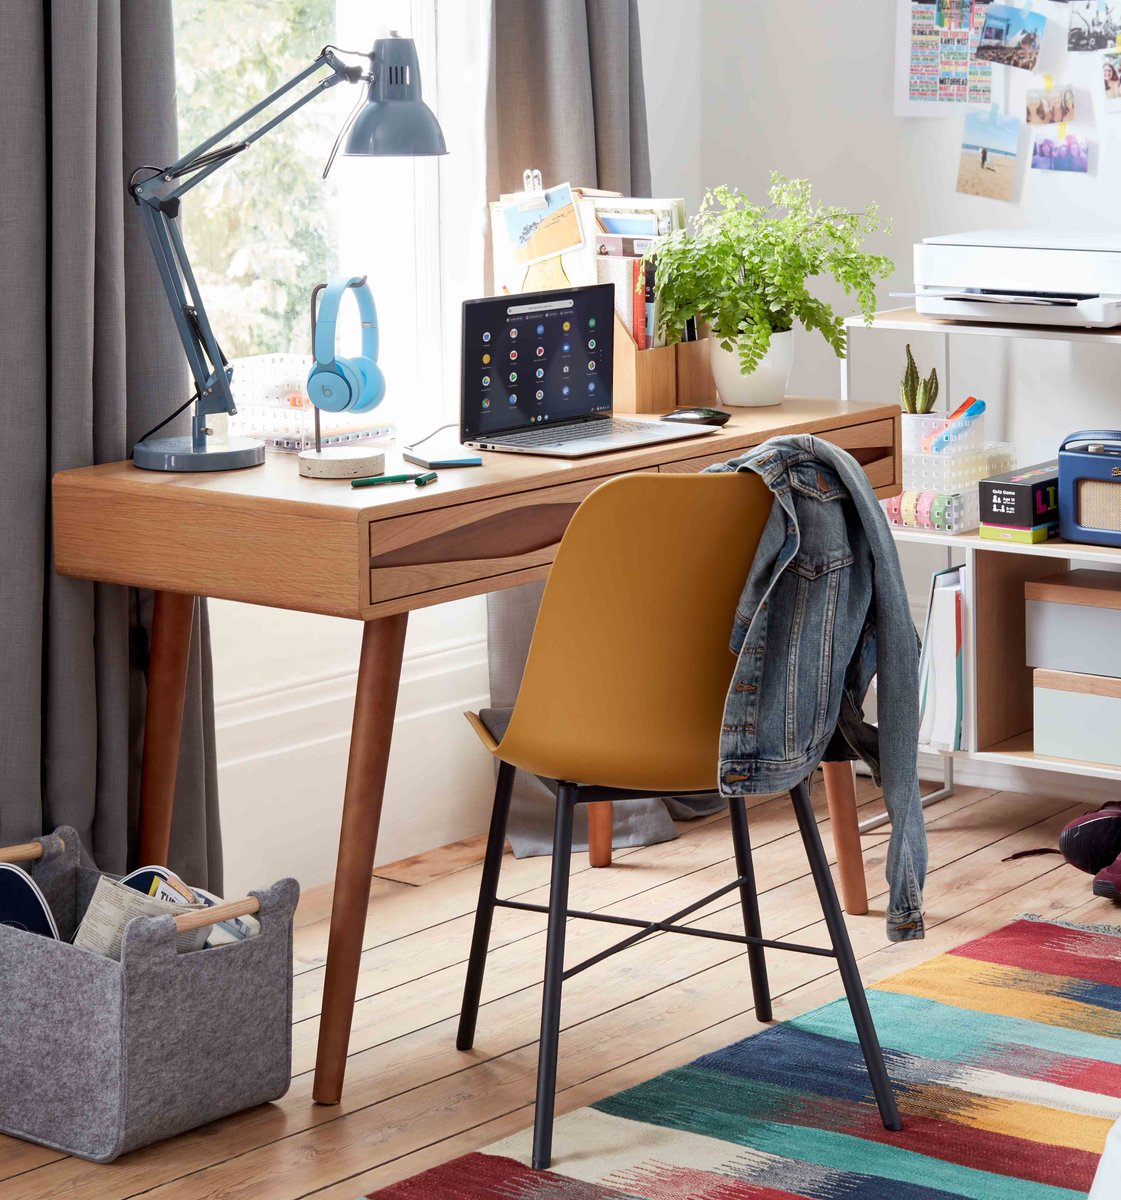 Wherever you're starting the new university term from, create the perfect study station to keep your focus with the right desk, chair and lighting. 📚 Shop for all your University essentials: https://t.co/fIZBOHfMKo. https://t.co/iQGBTXaodq